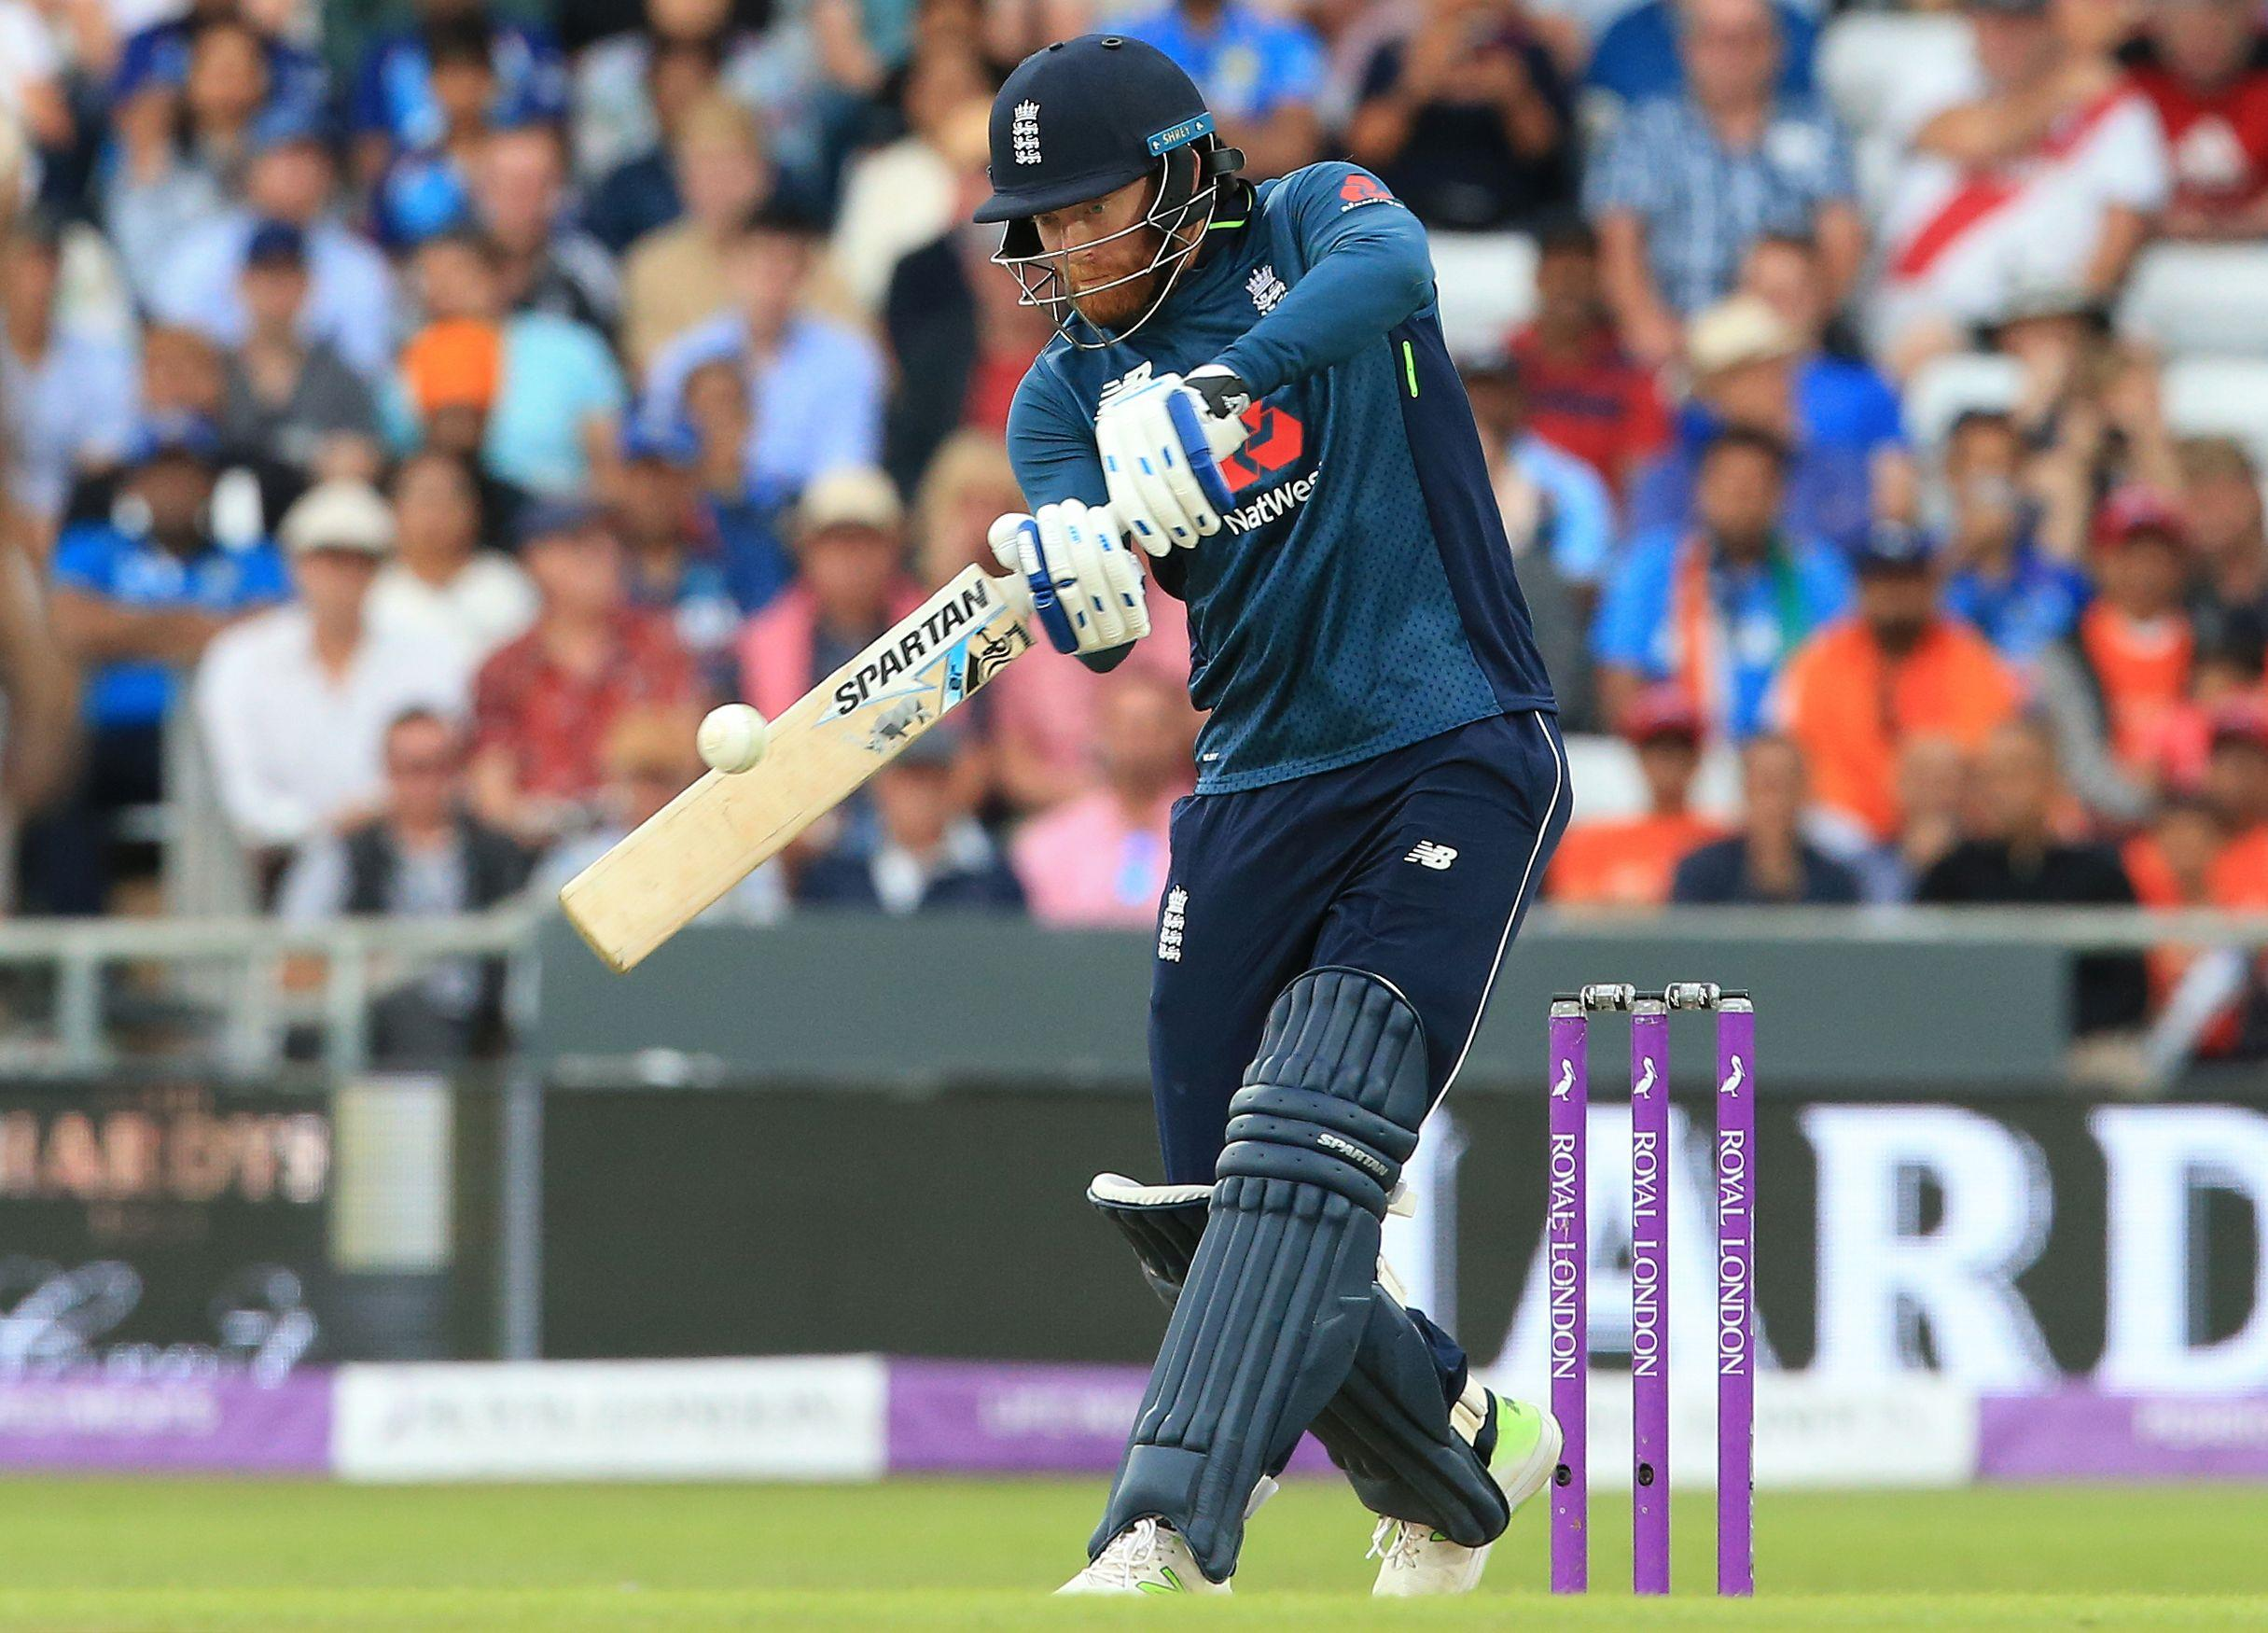 Jonny Bairstow got England off to a fast start at Headingly